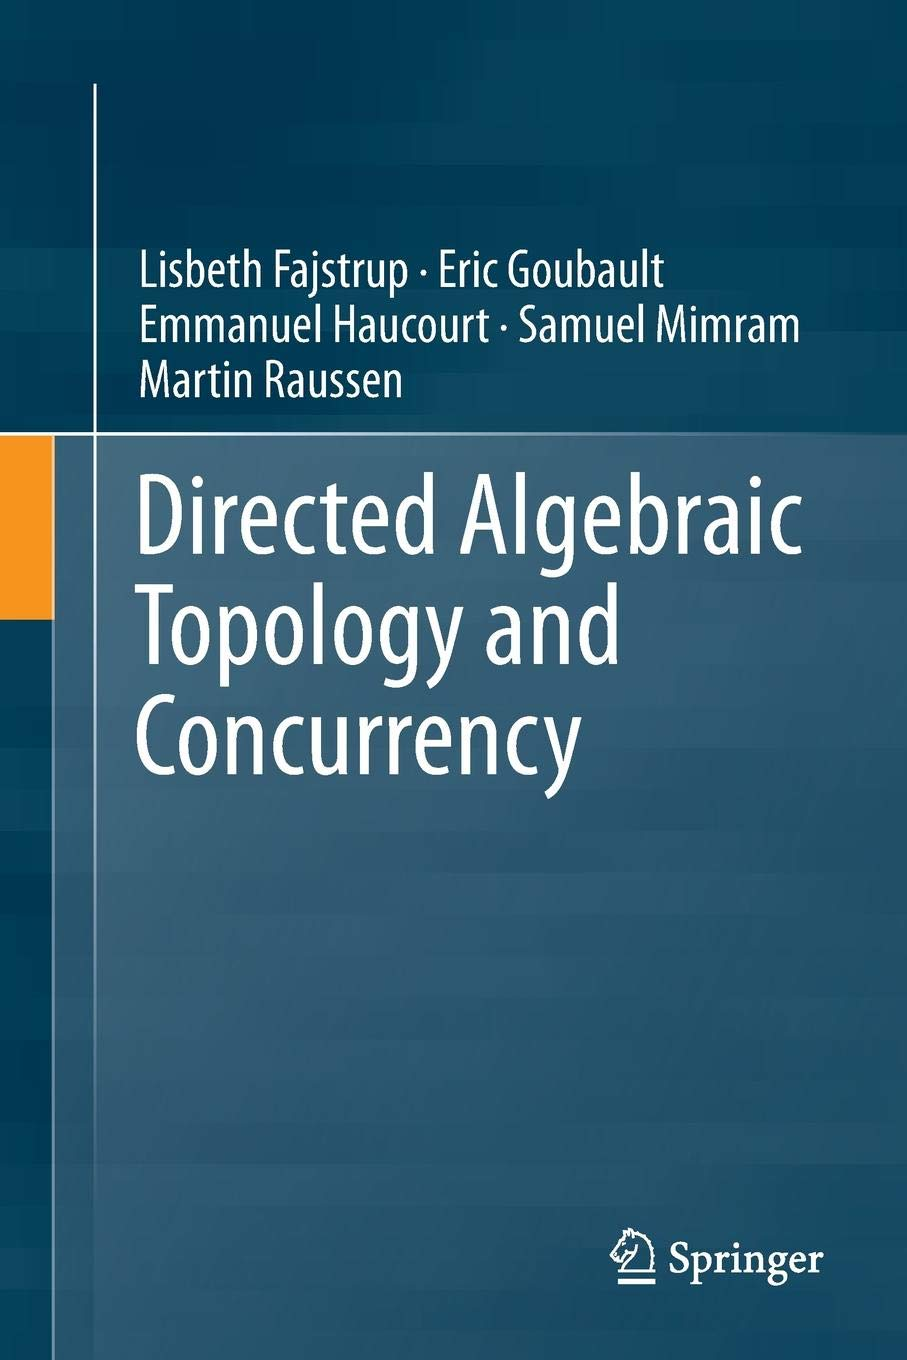 Directed Algebraic Topology and Concurrency